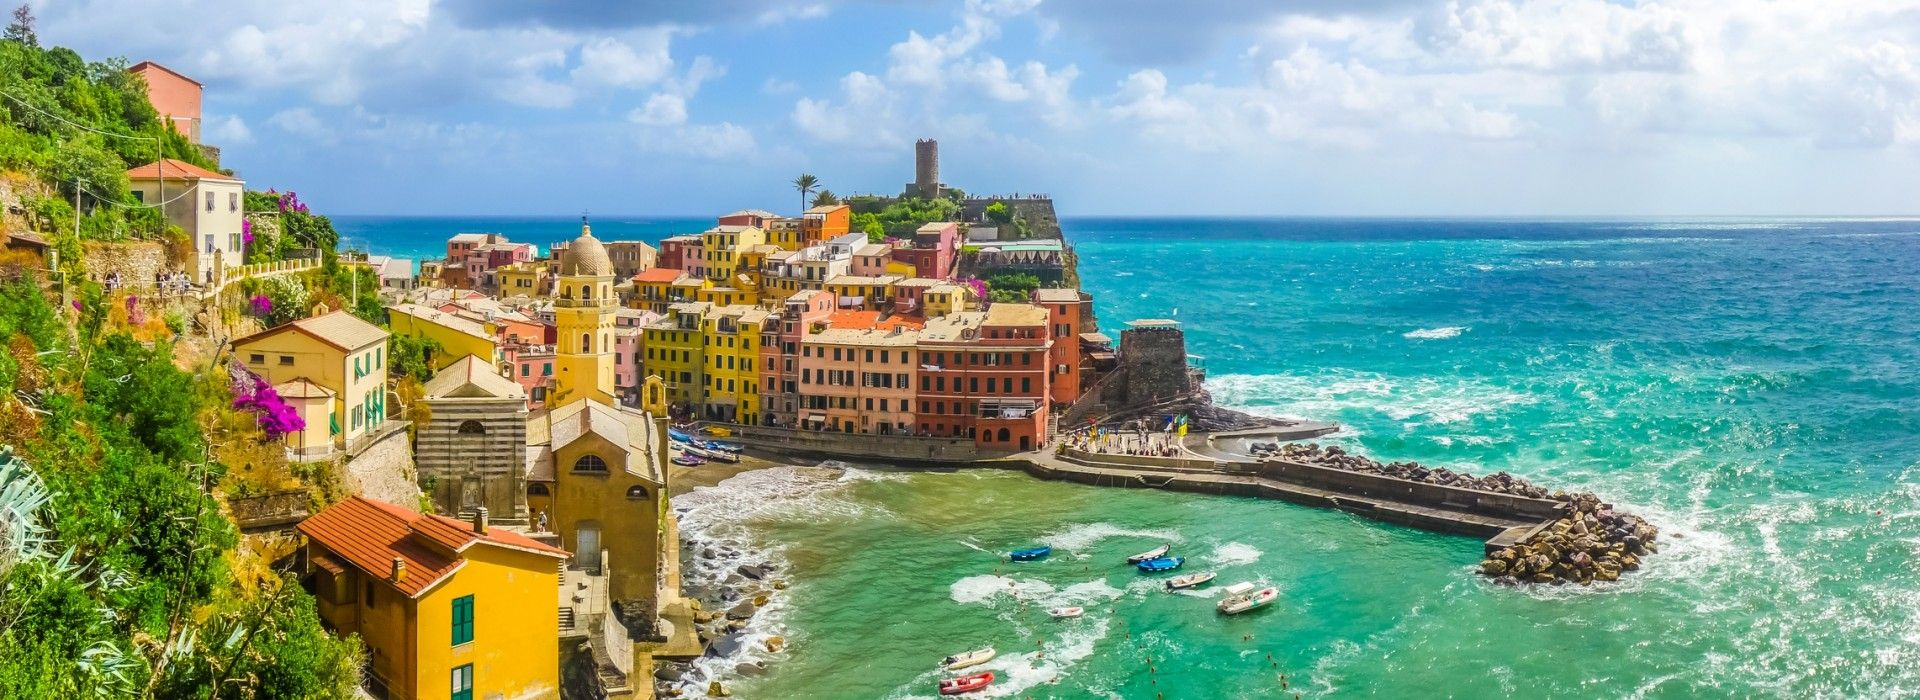 Special interests and hobbies Tours in Italy